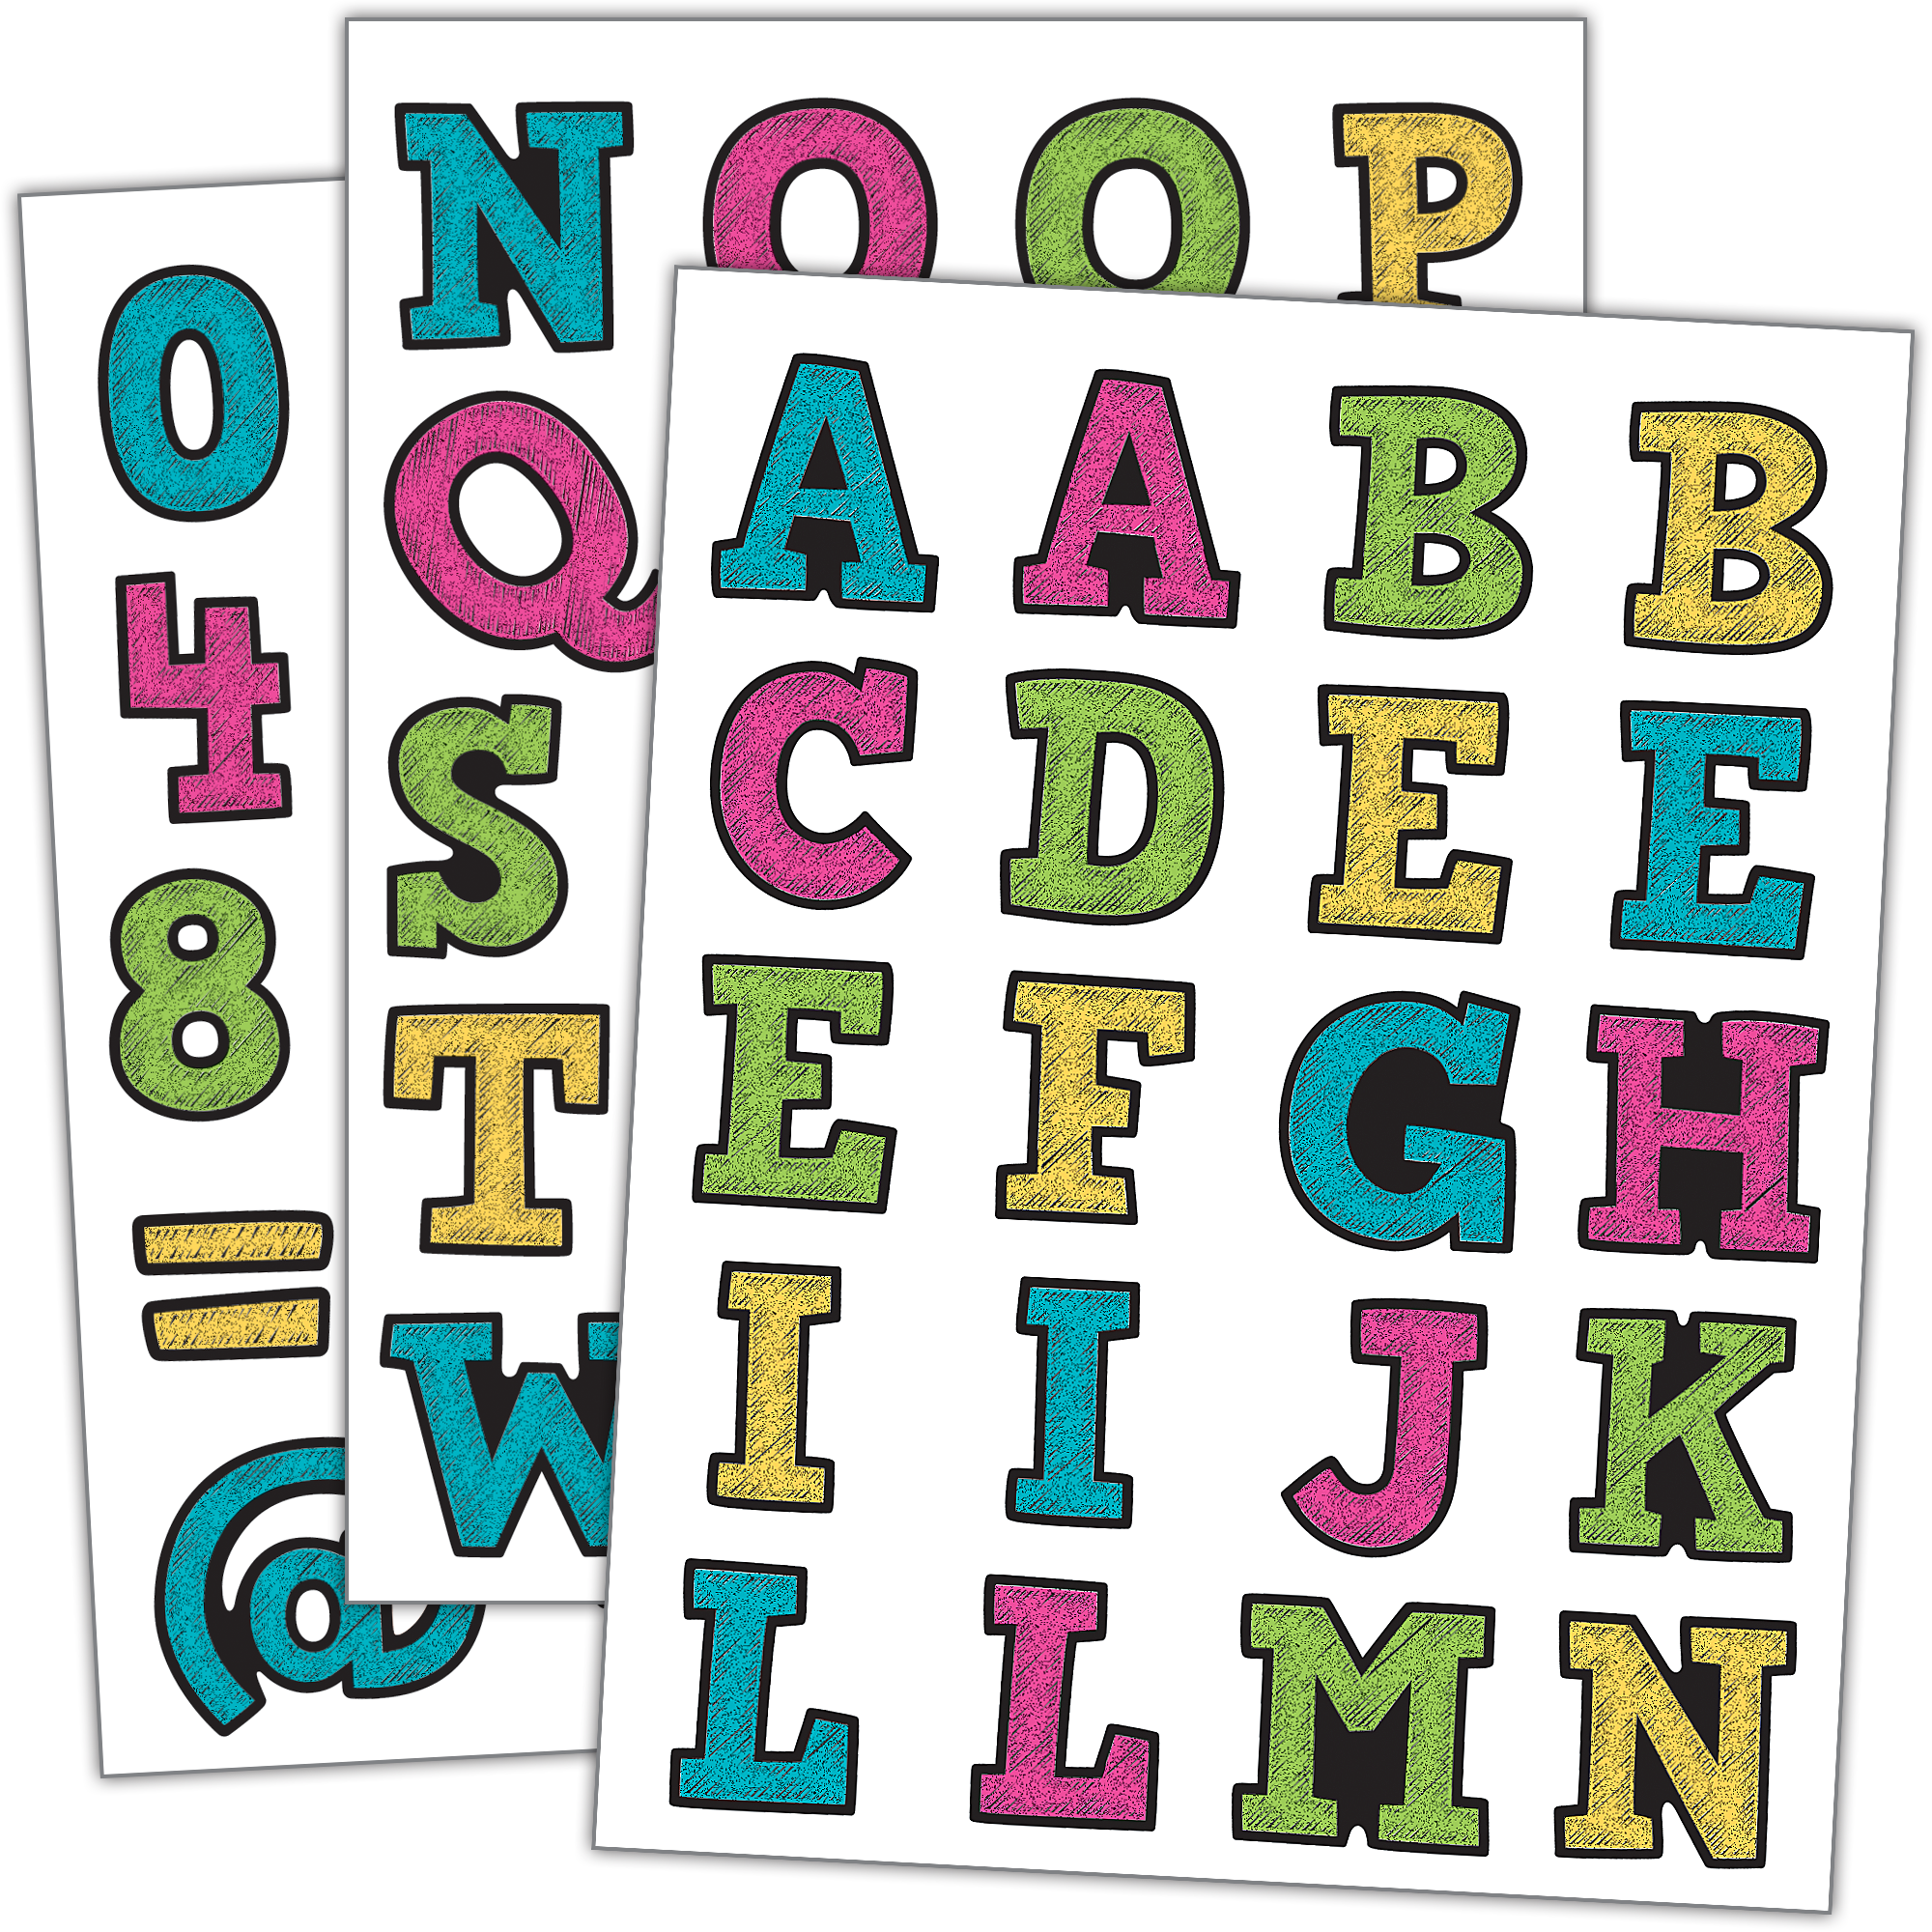 Number 1 clipart number 120. Chalkboard brights alphabet stickers